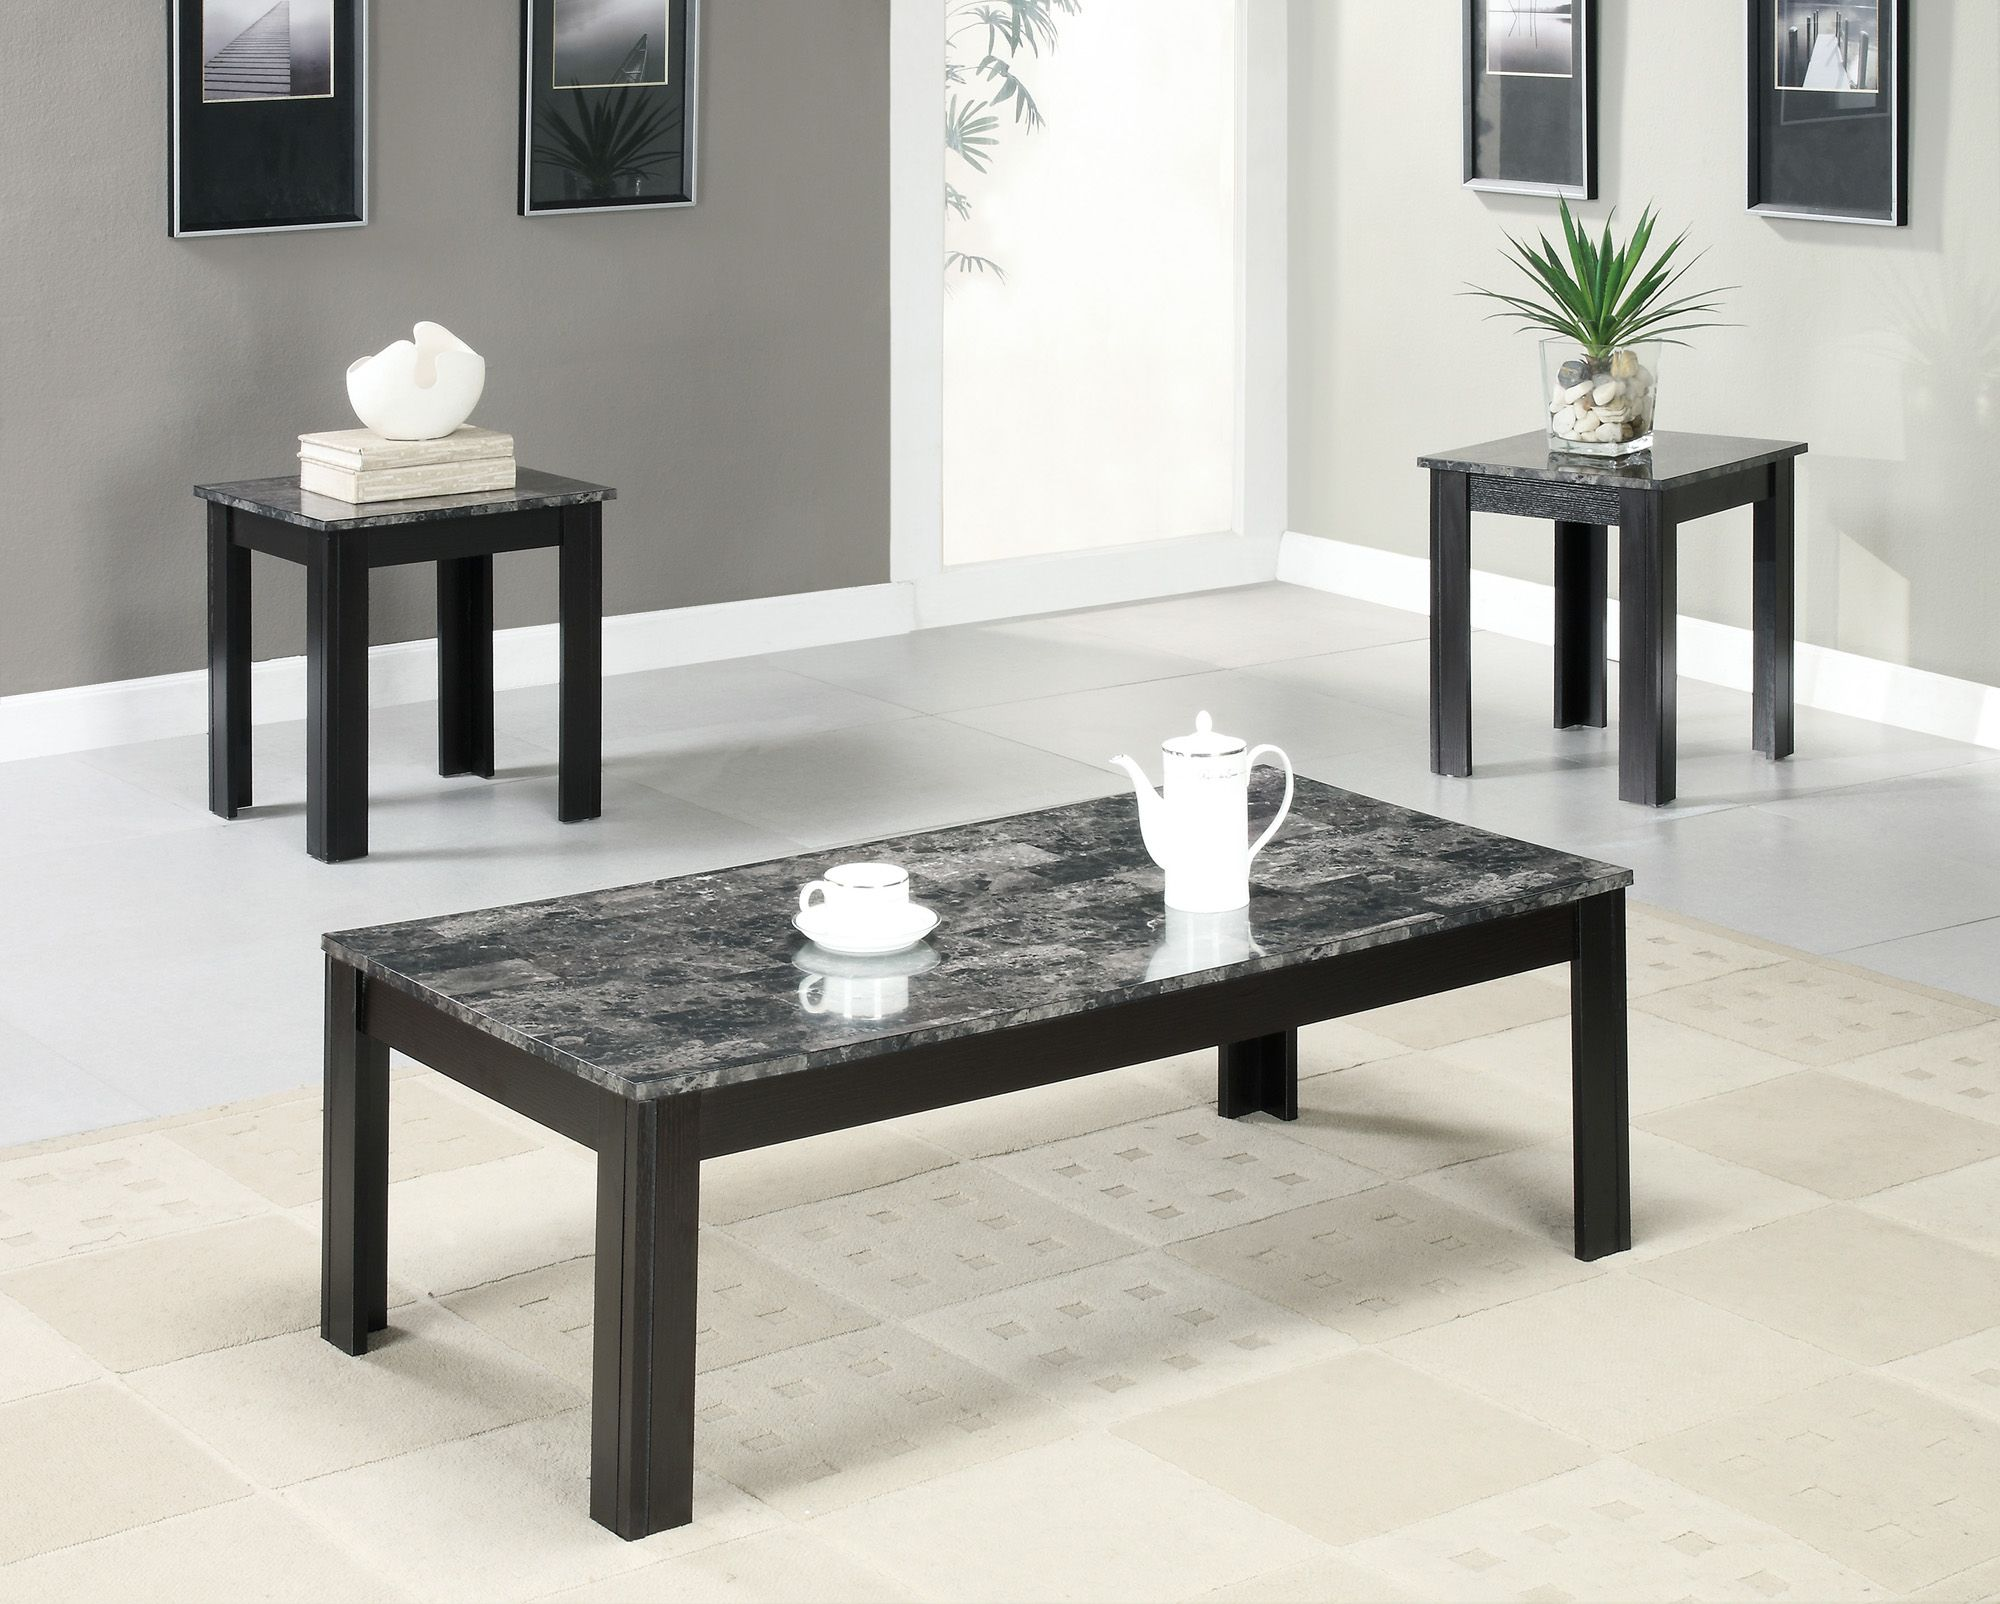 monarch specialties table set black grey marble look spin prod accent top home furniture living room coffee end tables clear chair design classics counter height dining with bench